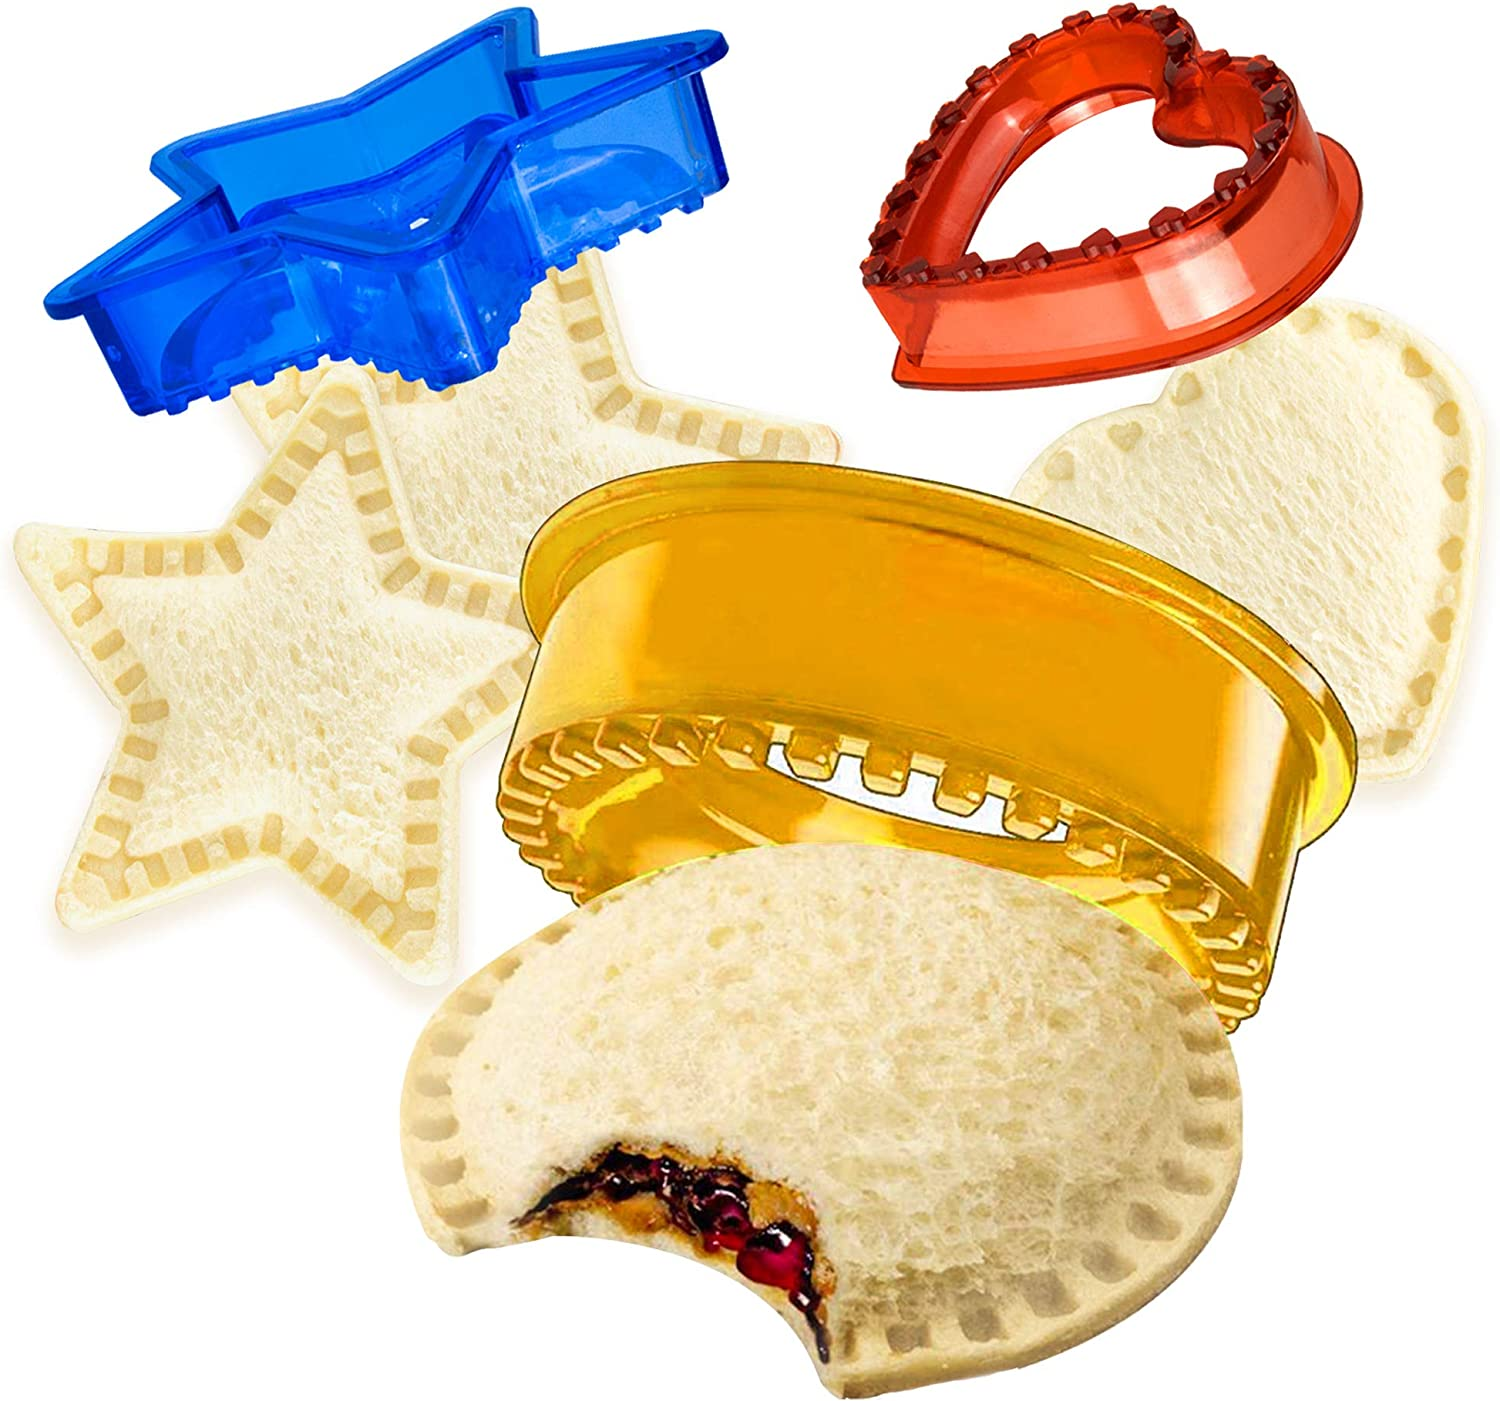 Sandwich Cutter, OUBLANC Uncrustable Sandwich Cutter and Sealer for Kids Cookie Bread Pancake Maker Great for Lunchbox and Bento Box Boys and Girls Kids Lunch (Star, Heart, Circle)